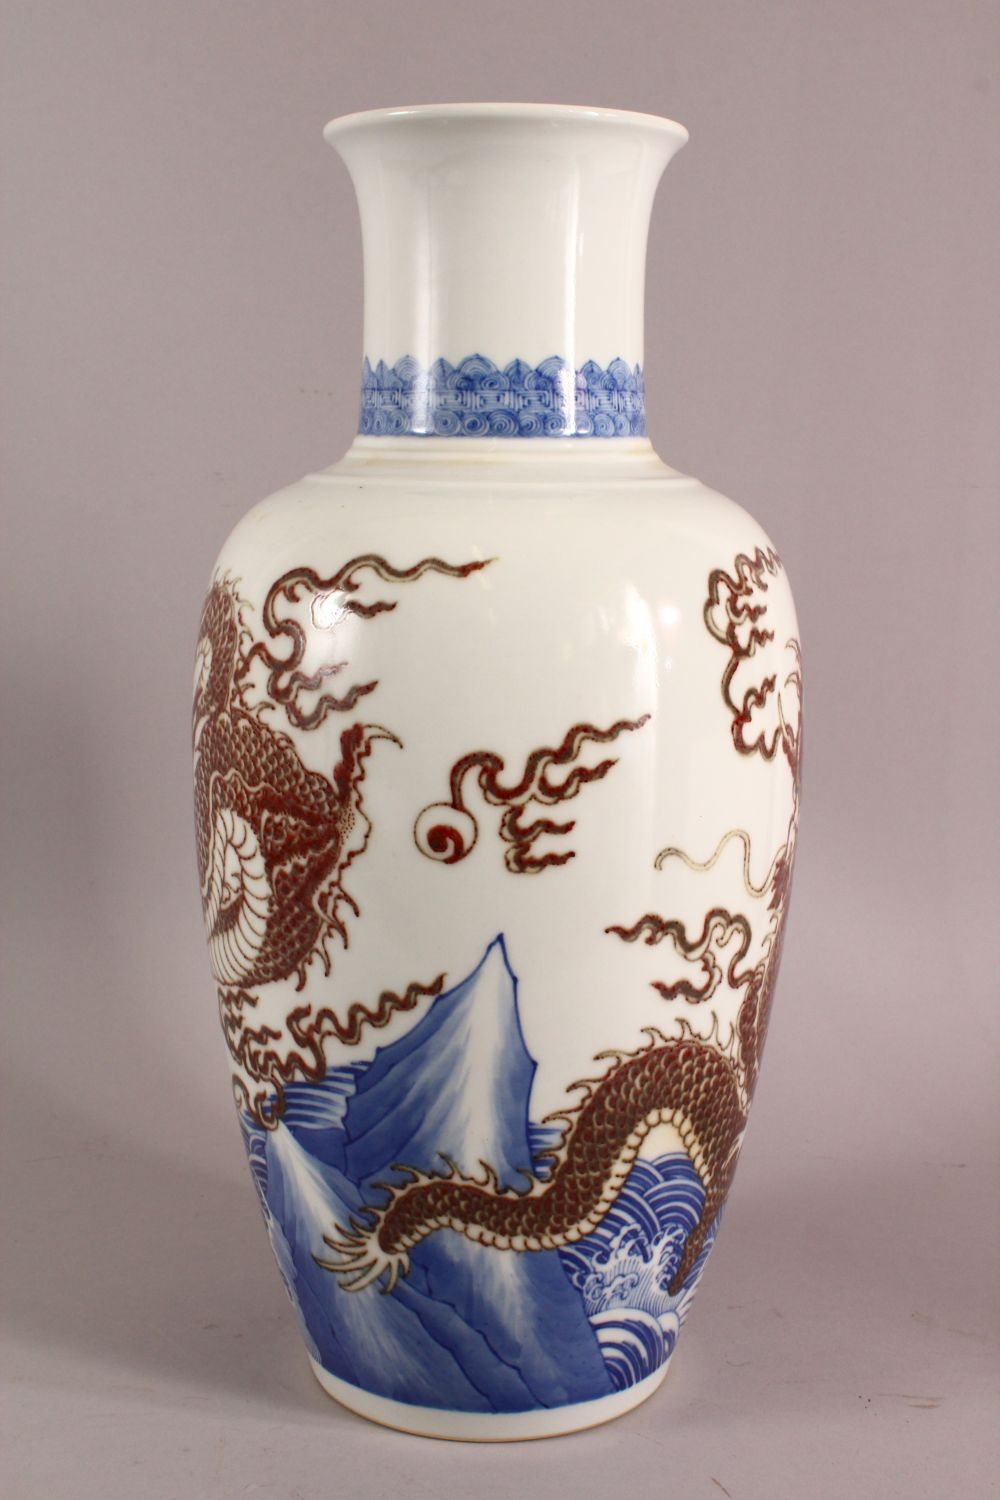 A LARGE CHINESE UNDERGLAZE BLUE & COPPER RED PORCELAIN VASE, decorated with dragons amongst waves, - Image 5 of 7